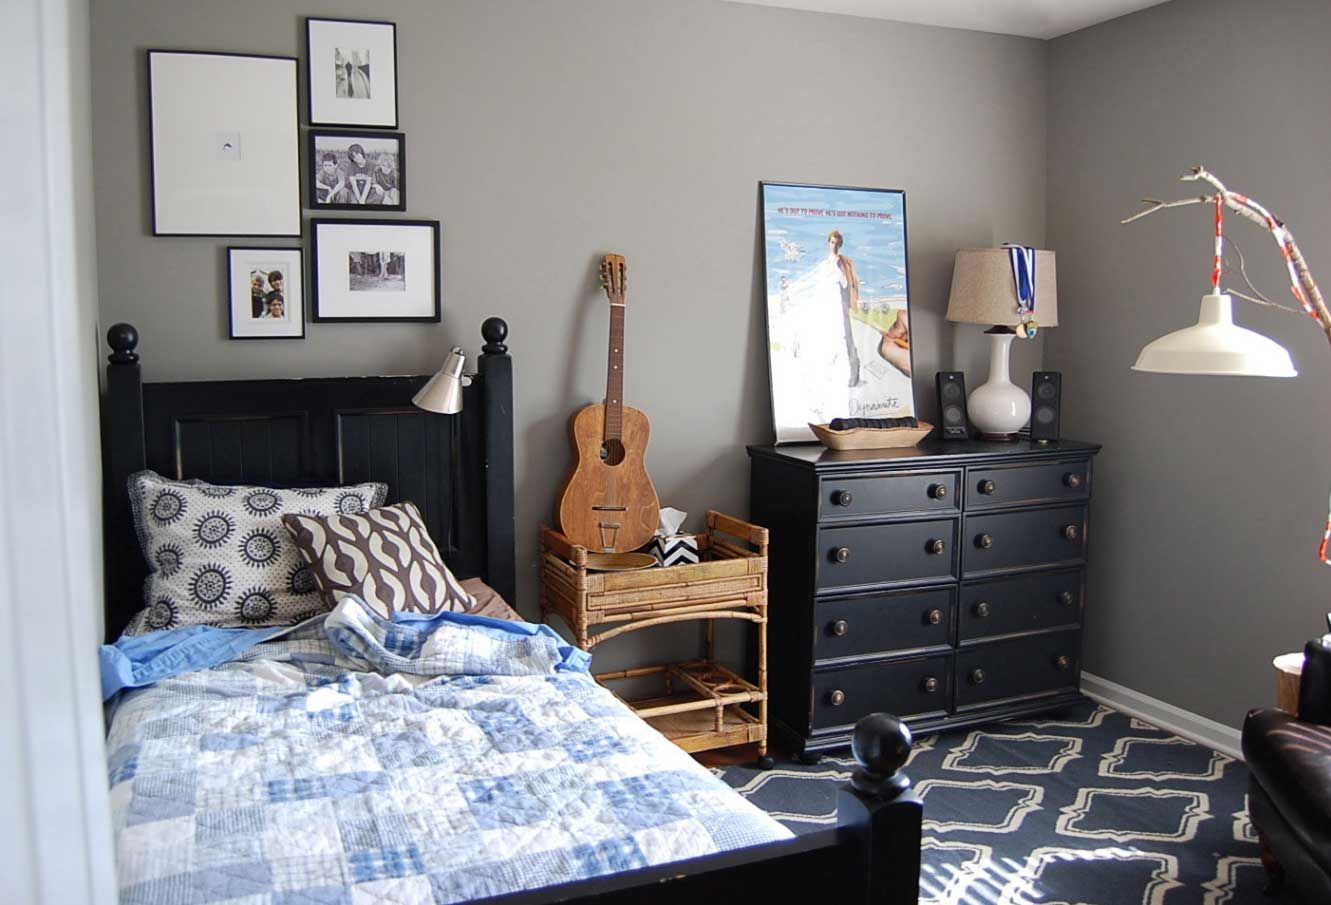 Boys black bedroom furniture Red Stunning Boys Room Paint In Grey Wall Paint Color Ideas Combined With Black Bedroom Furniture Sets Also With Black And White Carpet Pinterest Stunning Boys Room Paint In Grey Wall Paint Color Ideas Combined